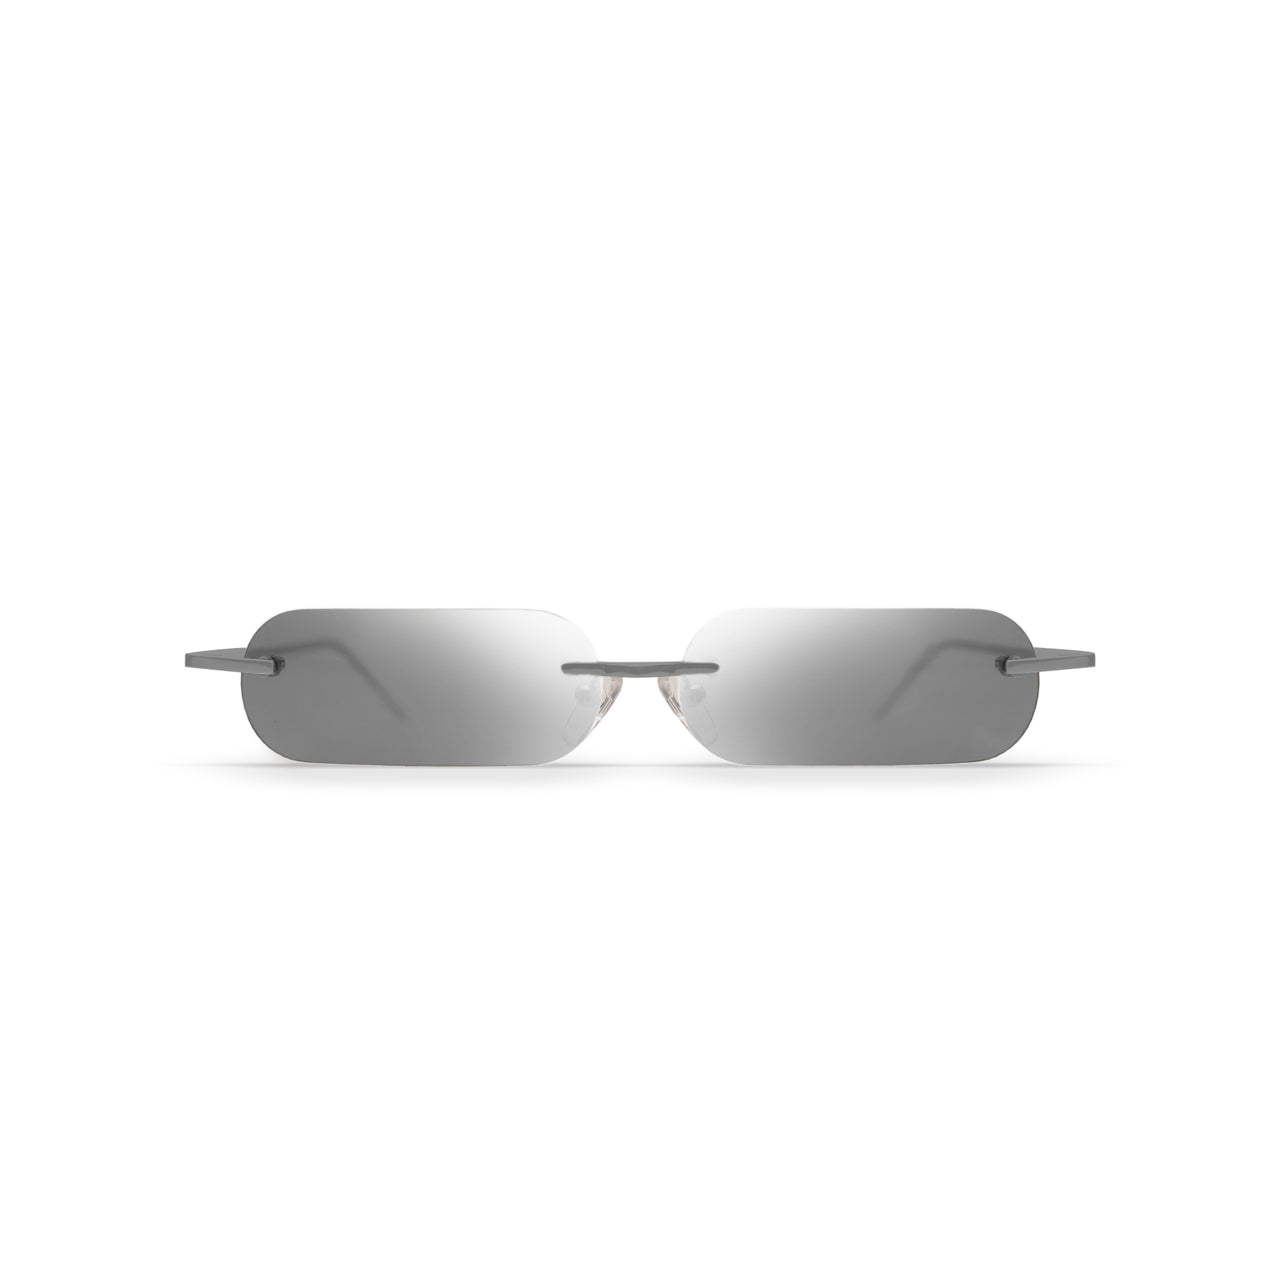 Metal. Brushed Silver. Silver Mirror Lens. - BLYSZAK eyewear eyewear - eyewear, optical, sunglasses